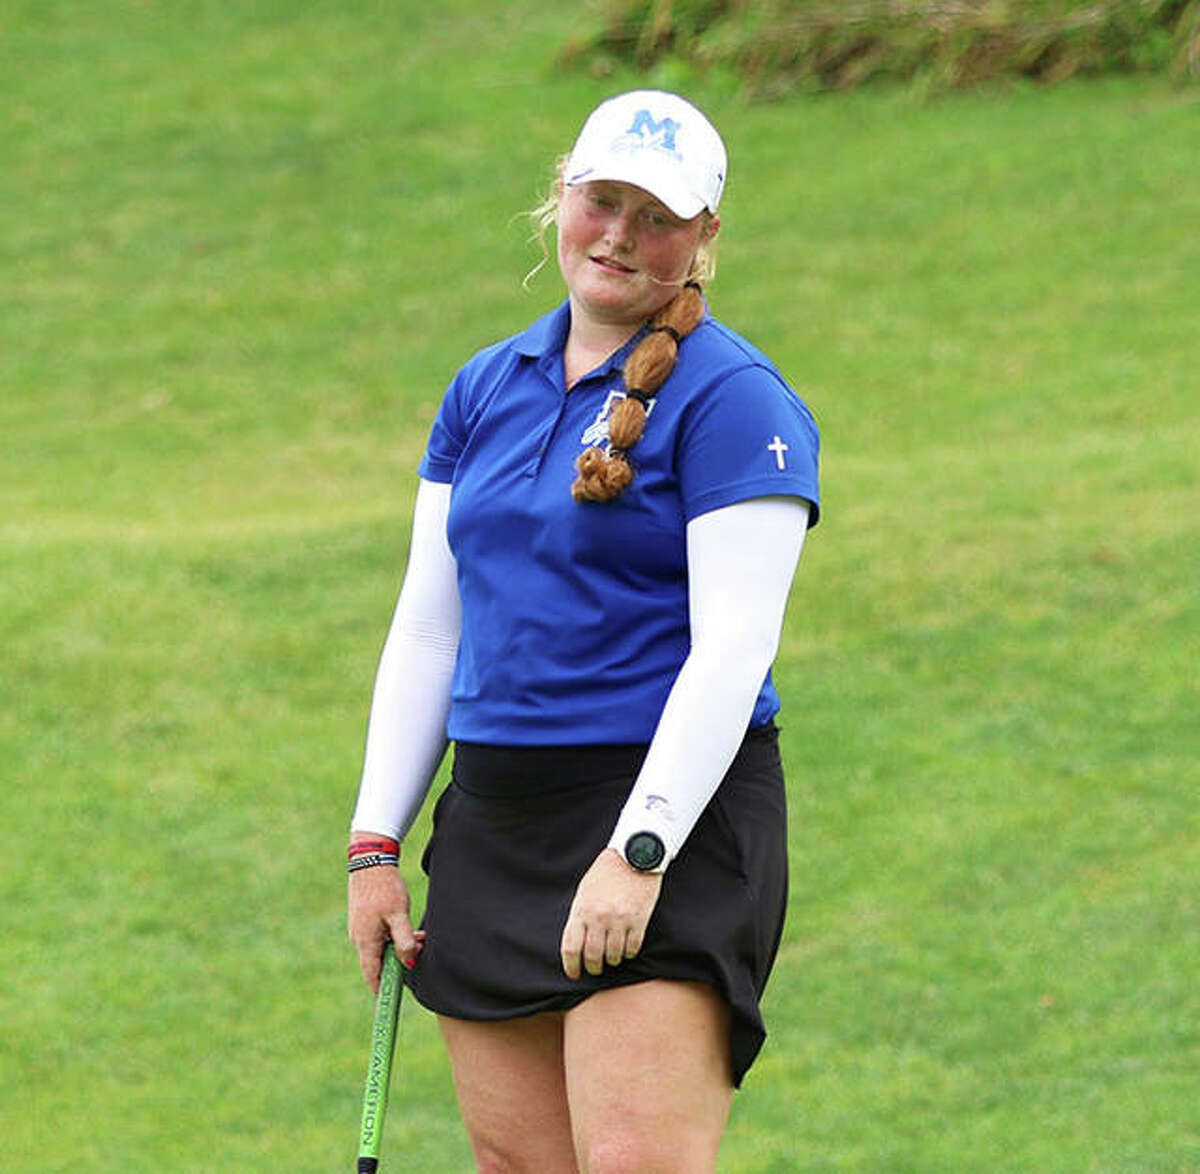 Marquette's Gracie Piar reacts as her birdie putt an inch or two short of the cup on hole No. 12 at the Blast Off Tourney on Saturday at Olin. Piar made five birdie putts and two more for eagle while shooting a 6-under par 66 to win the tourney by four shots.